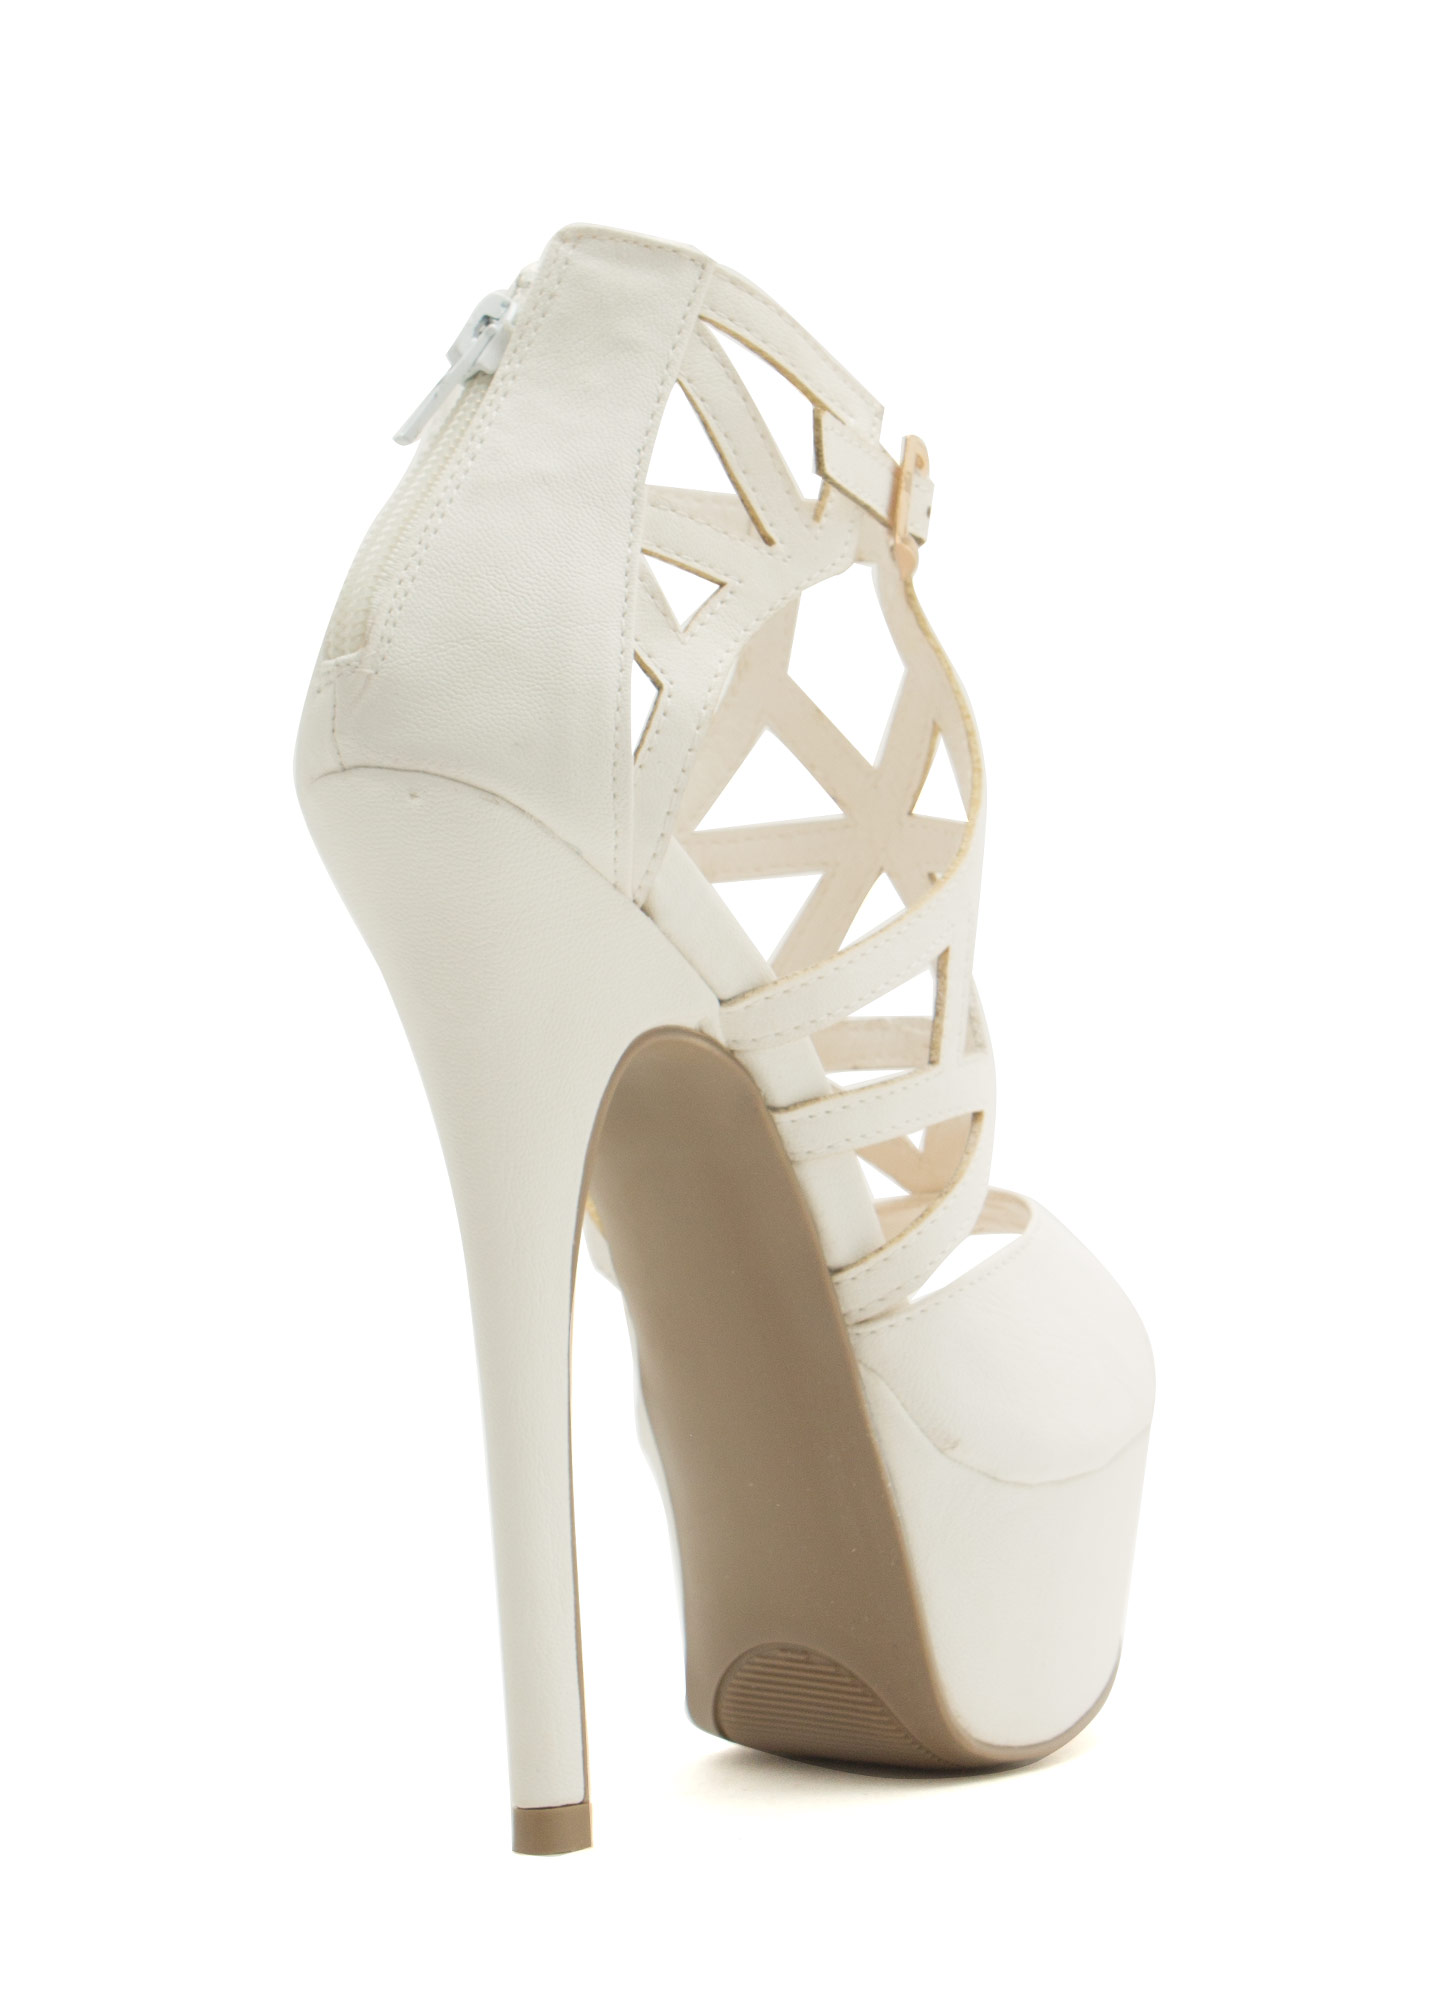 Taking Shape Strappy Cut-Out Heels WHITE